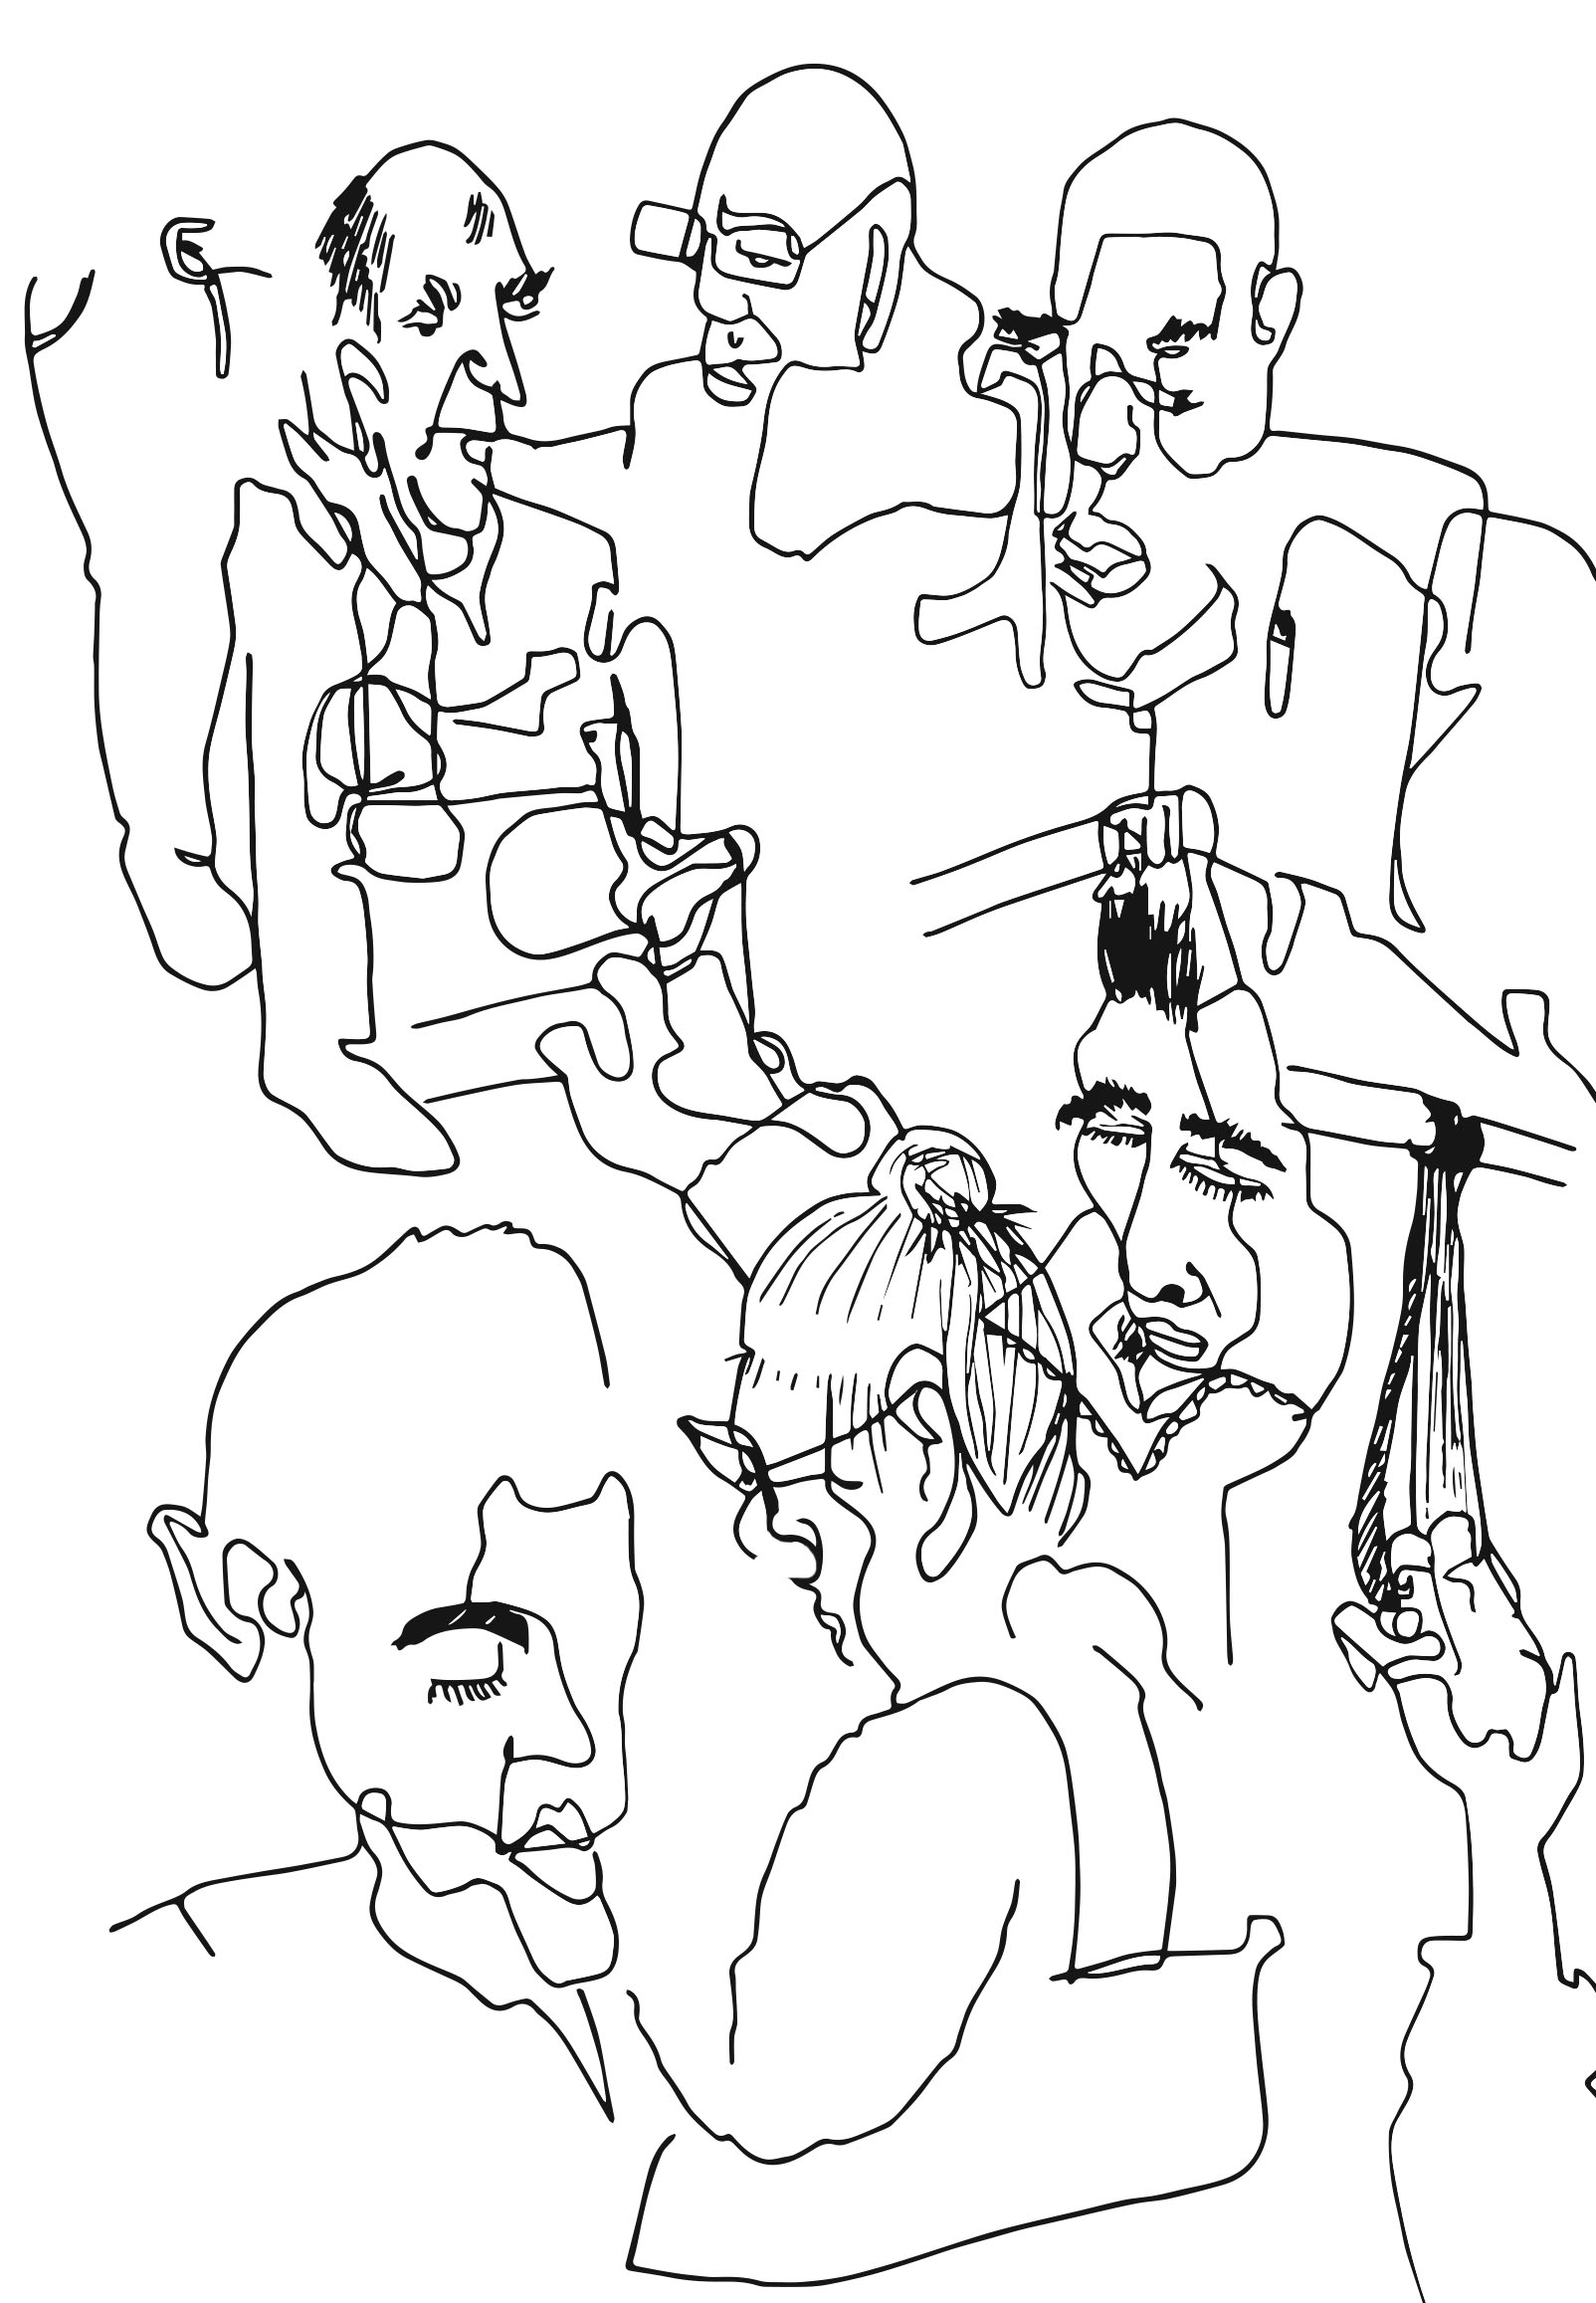 """the crowd , 2018   Ink on paper, vectorized  5.5"""" x 8.5"""""""